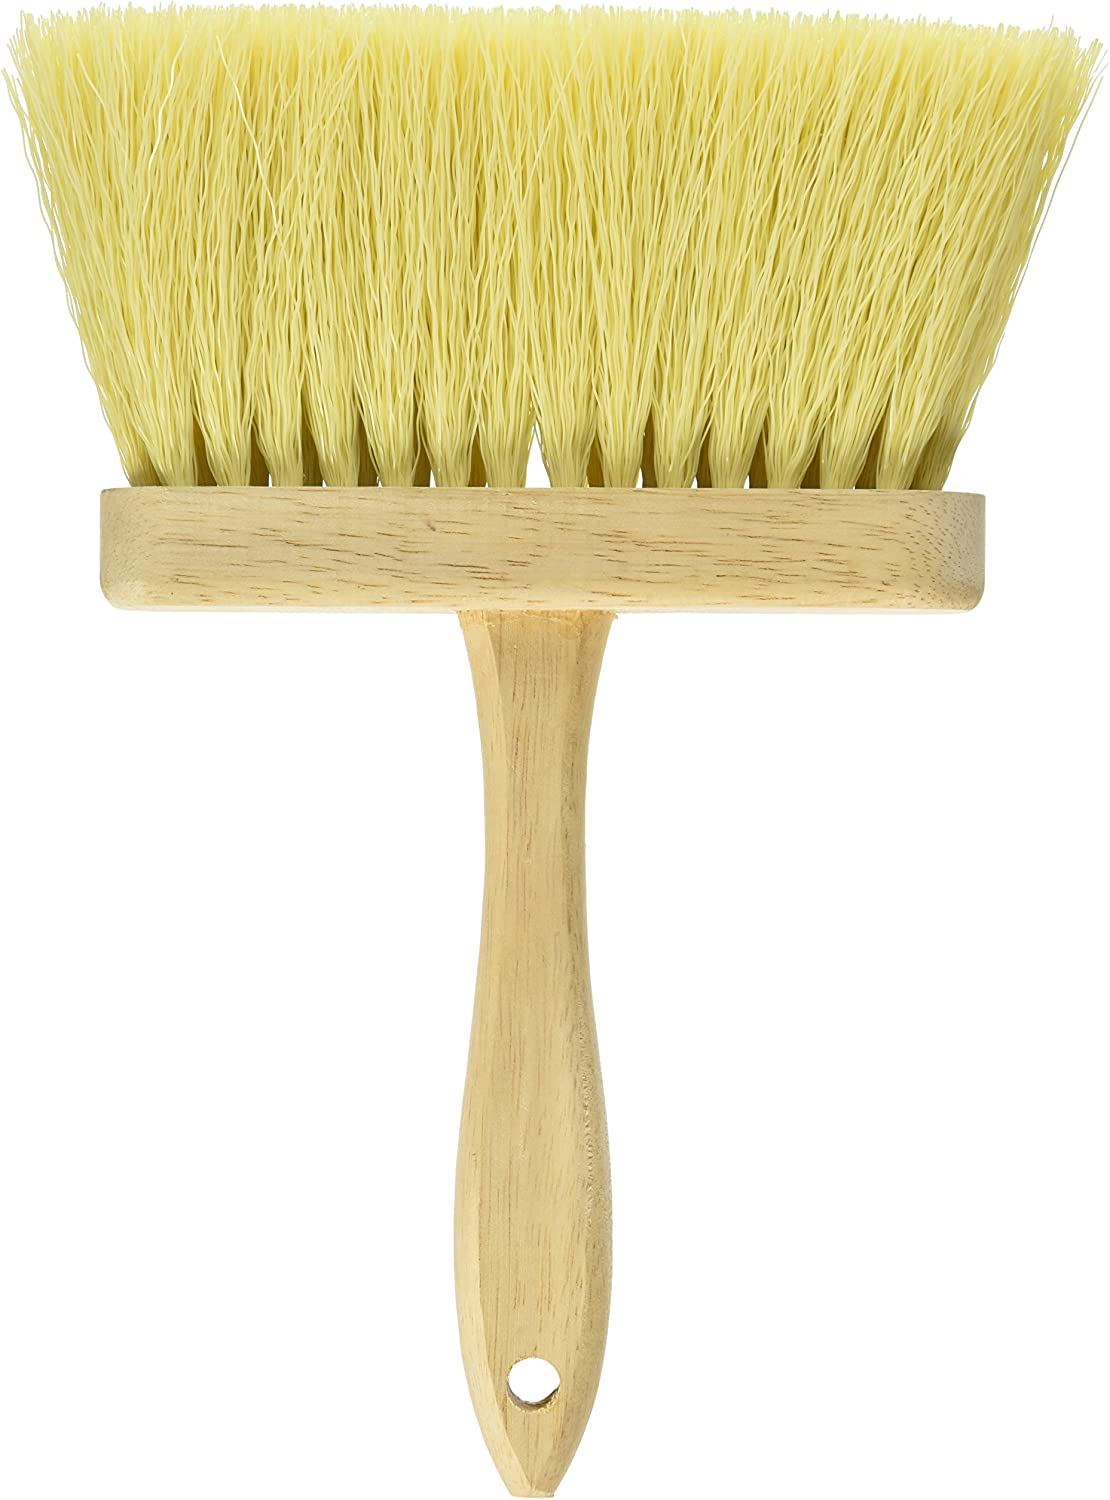 4-3//4-Inch DQB Industries 11937 E-Z Fit Tampico Colored Poly Masonry Brush